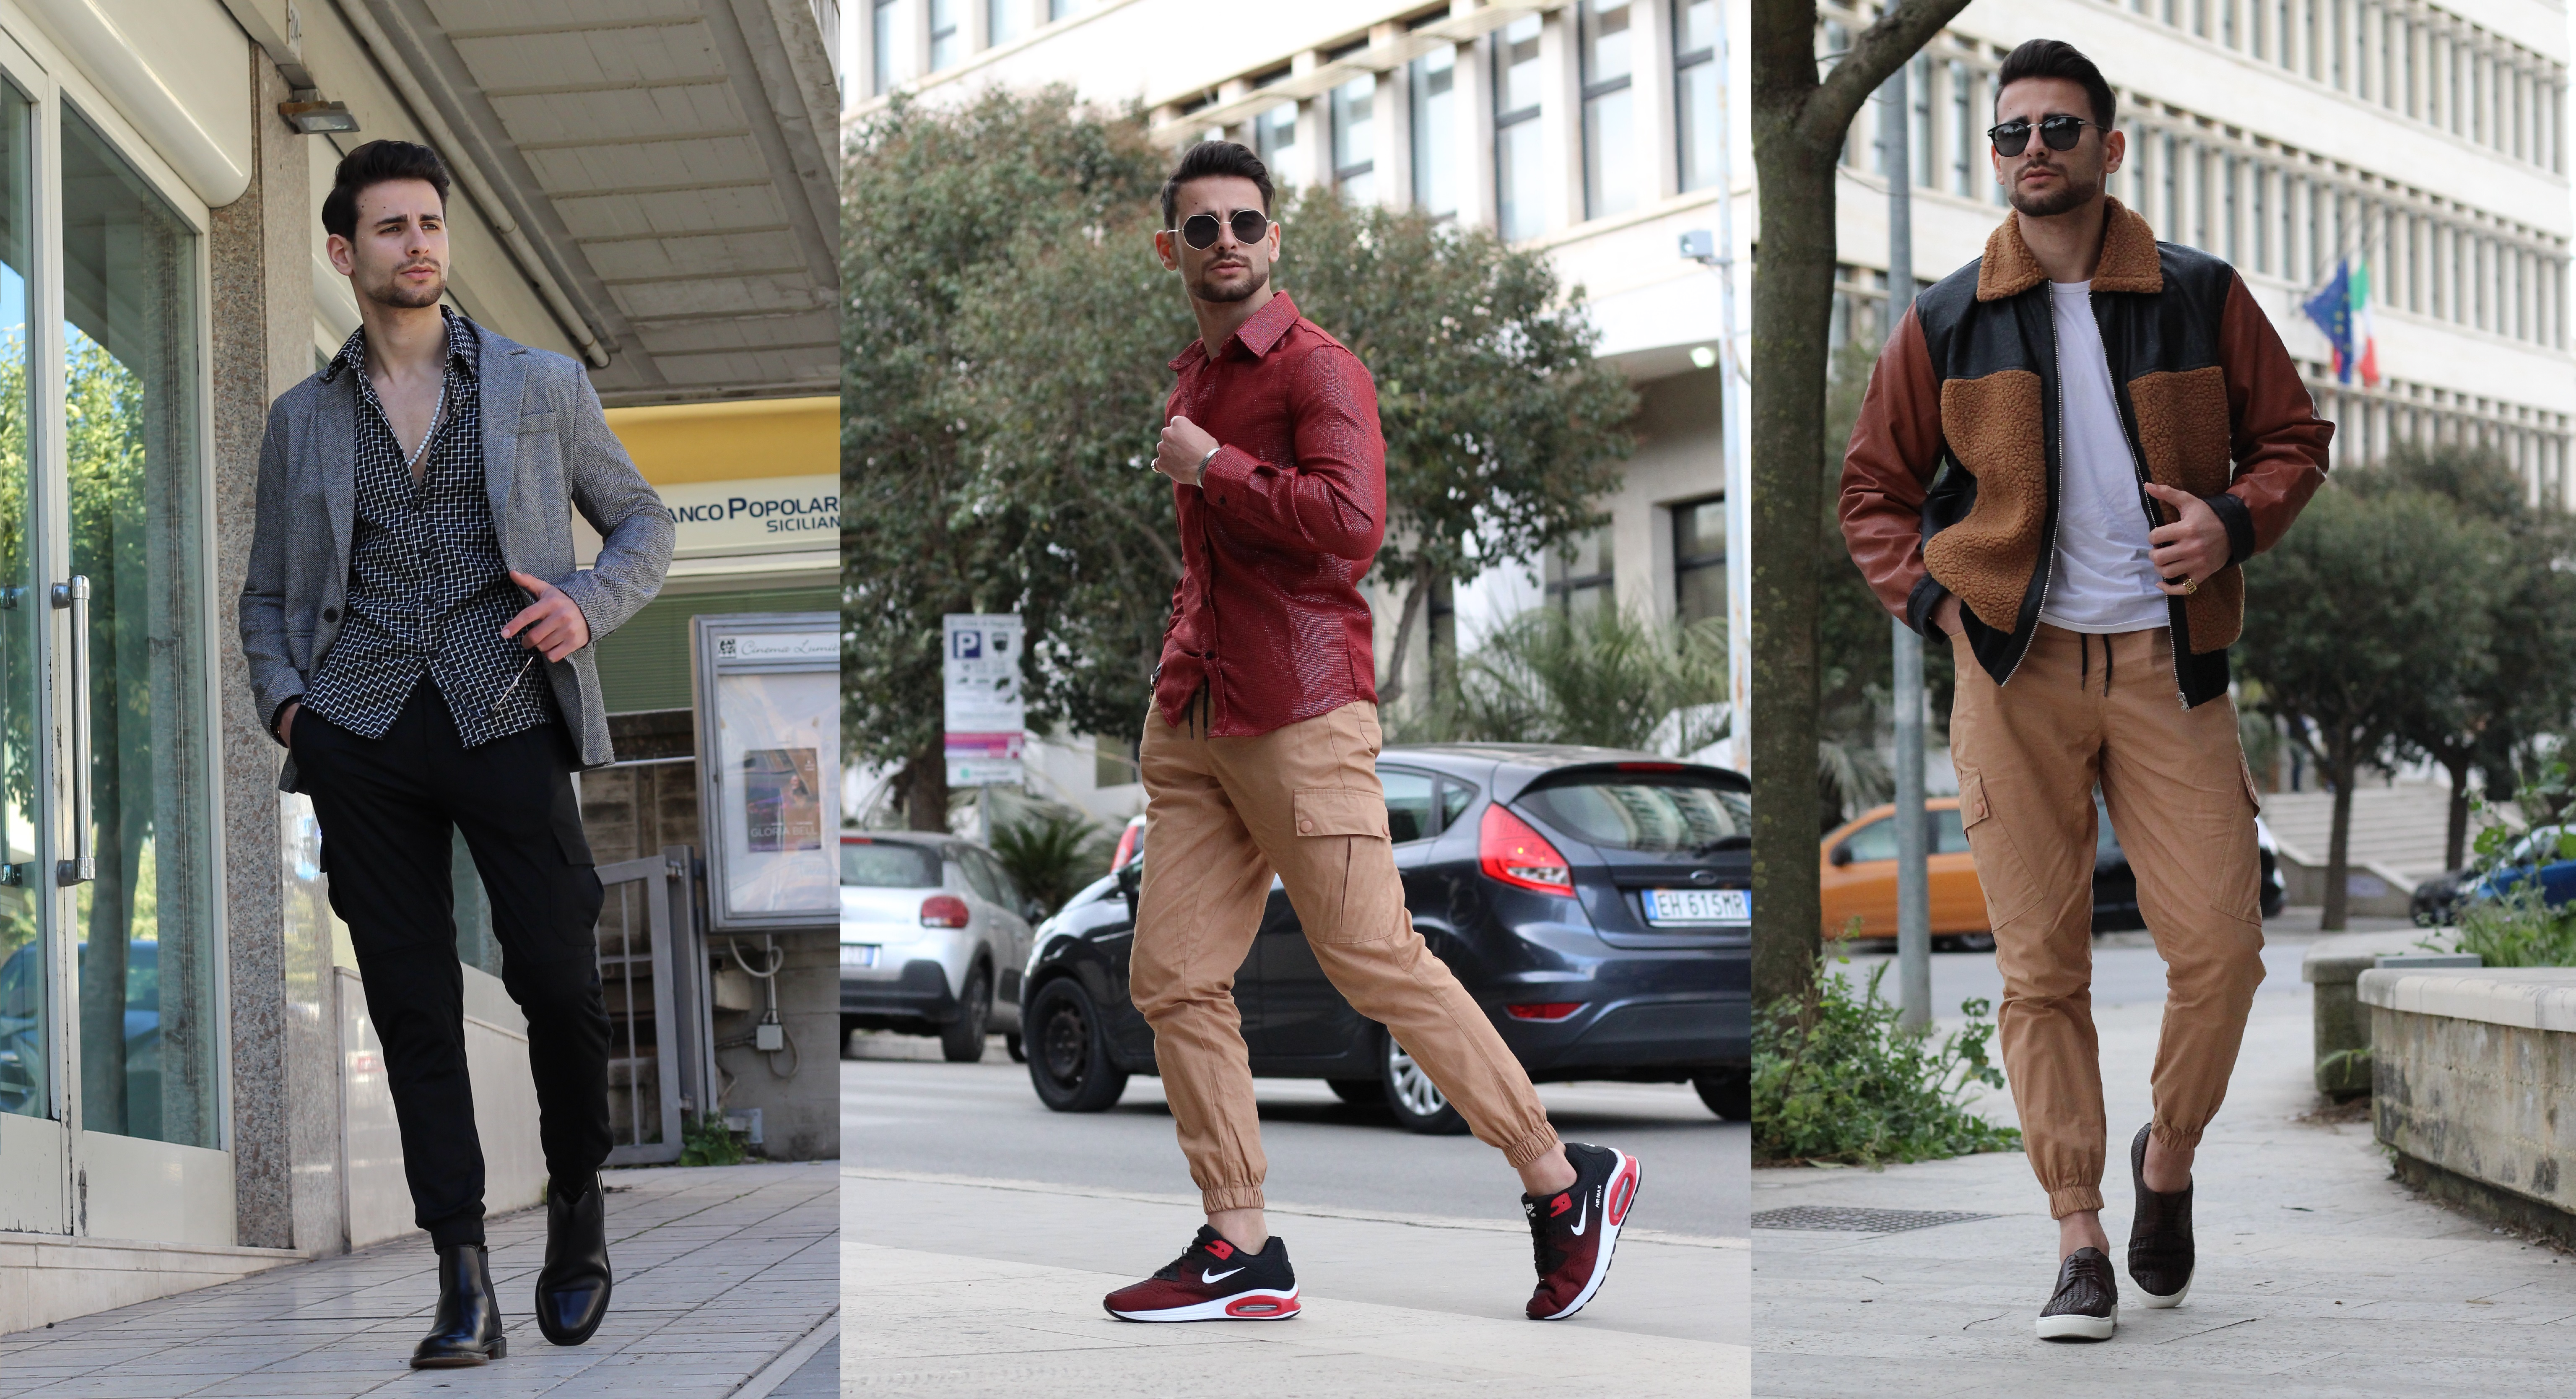 corrado firera, cf's magazine, be cool, essere cool, moda, stile, style, outfit, street style, ootd, instagram influencer